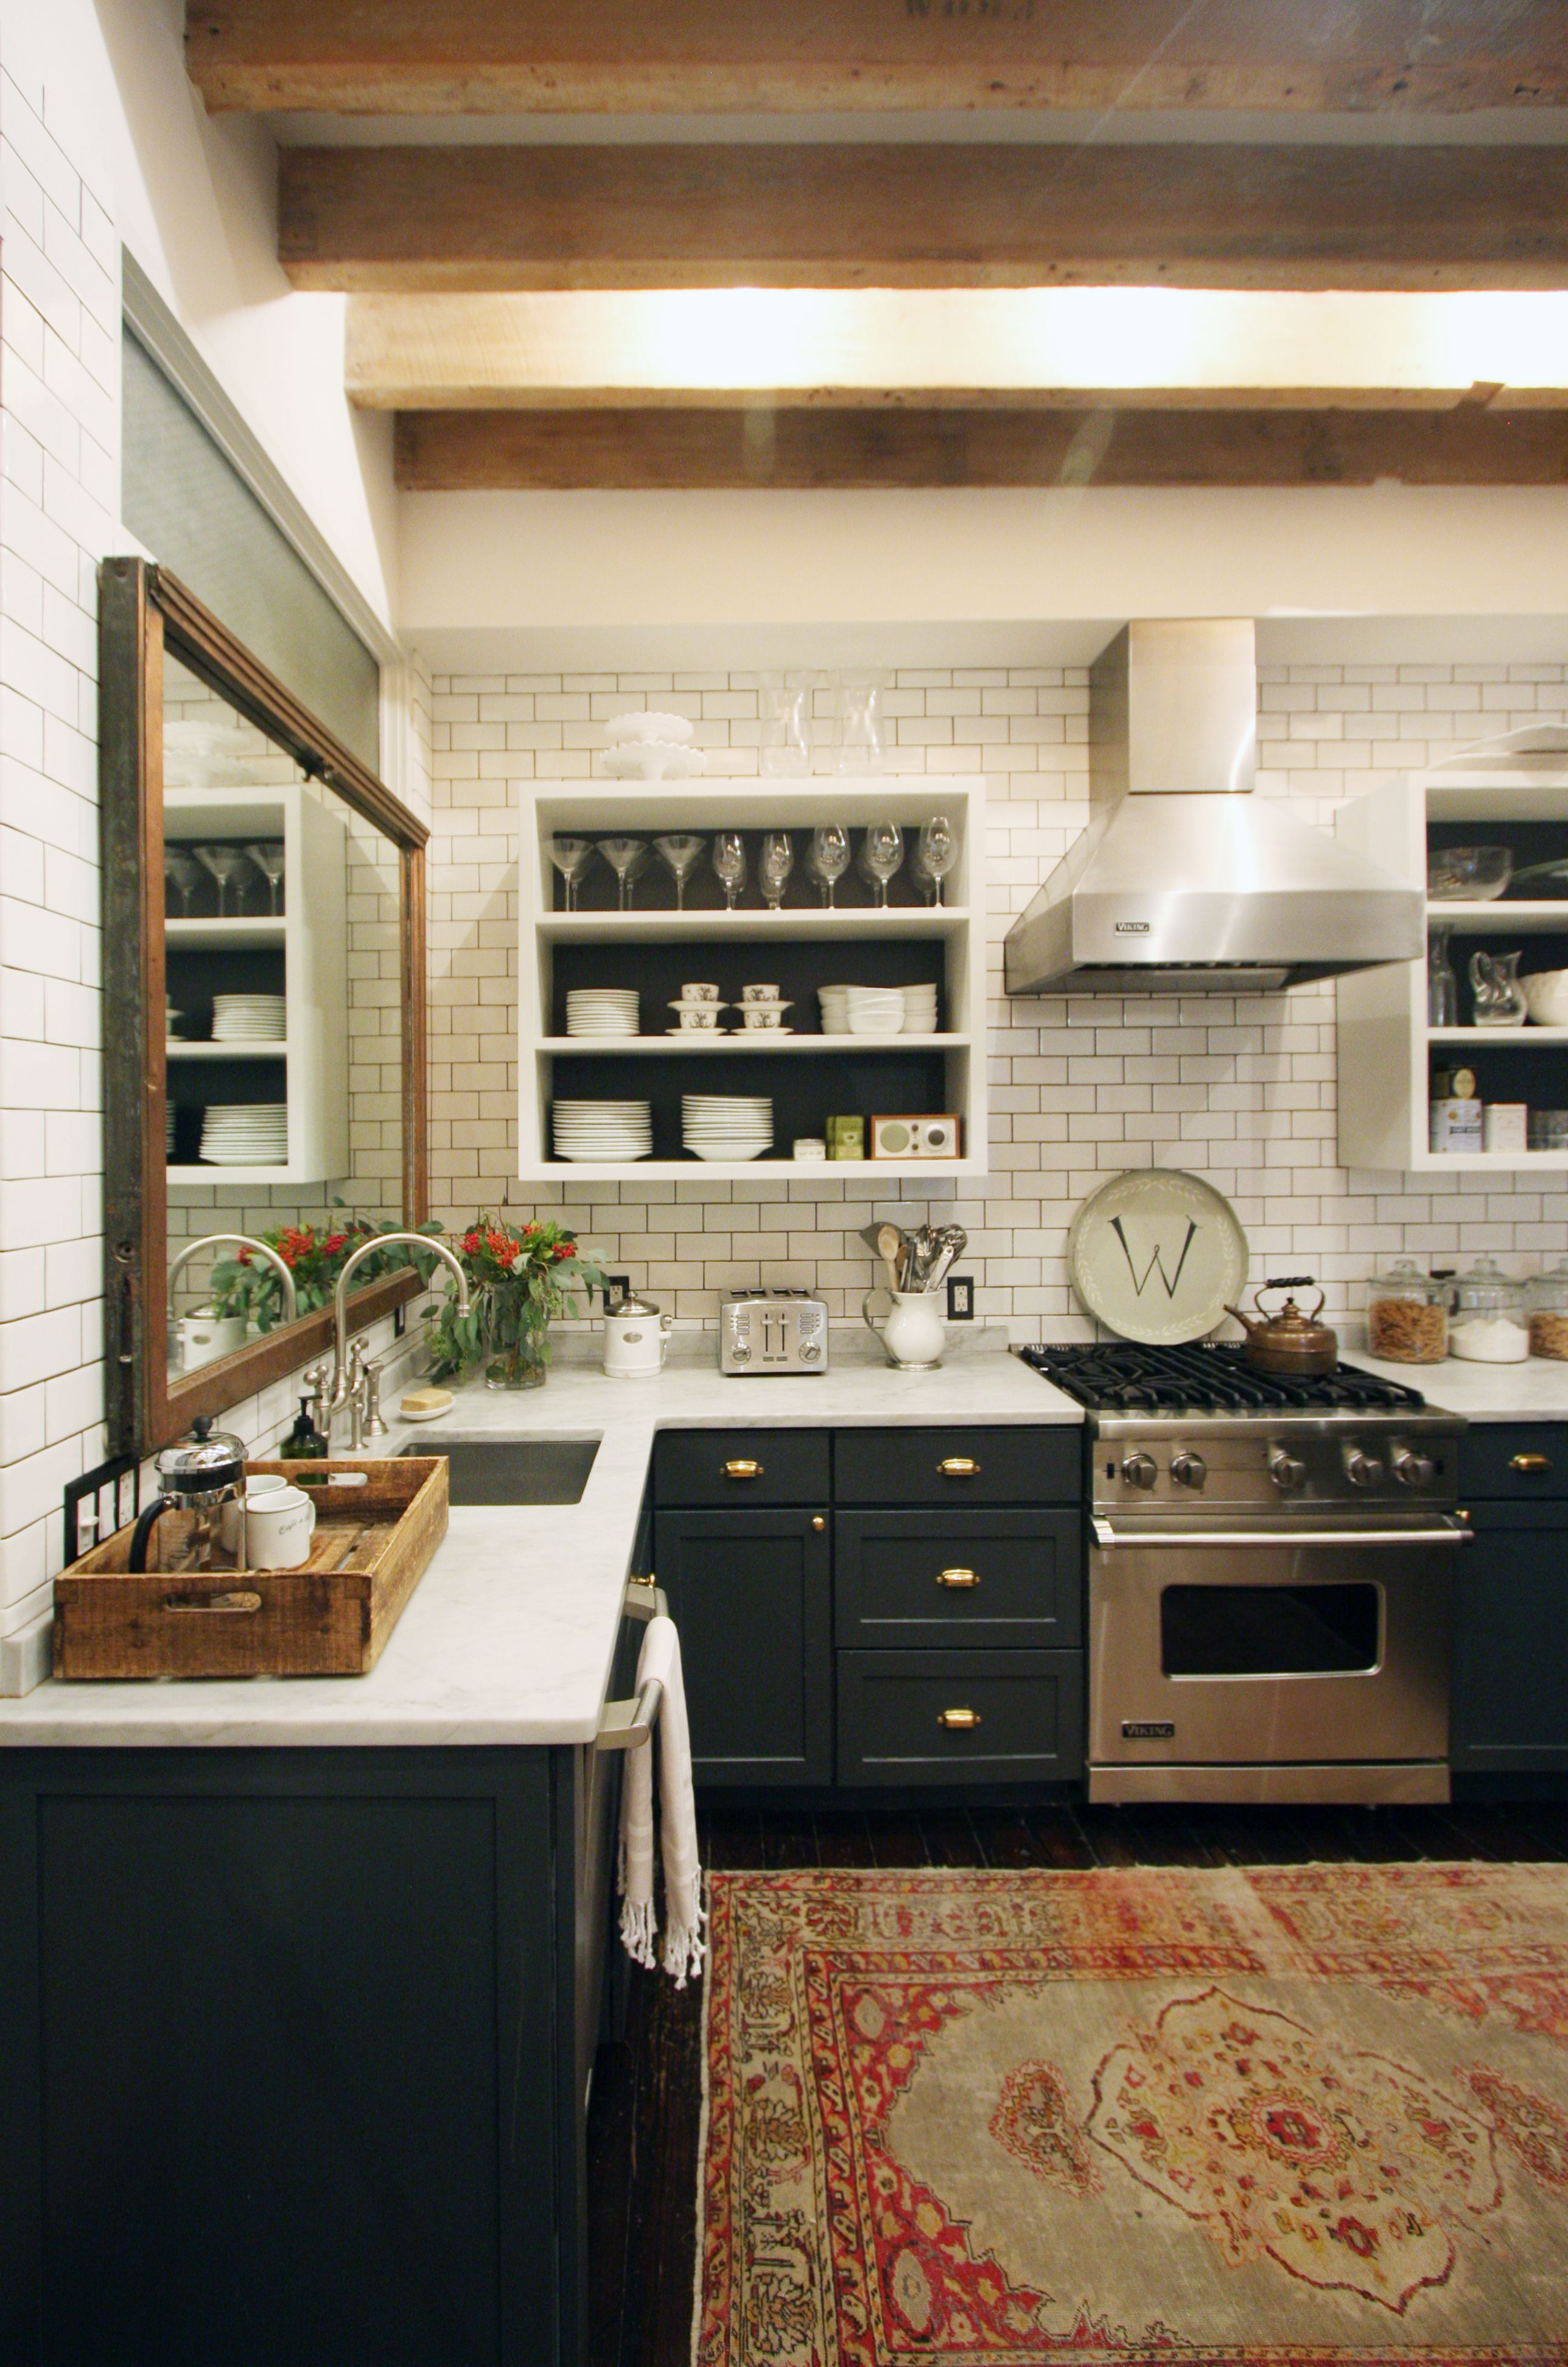 20+ Home Decor Trends That Made A Statement In 2016 | Pinterest ...